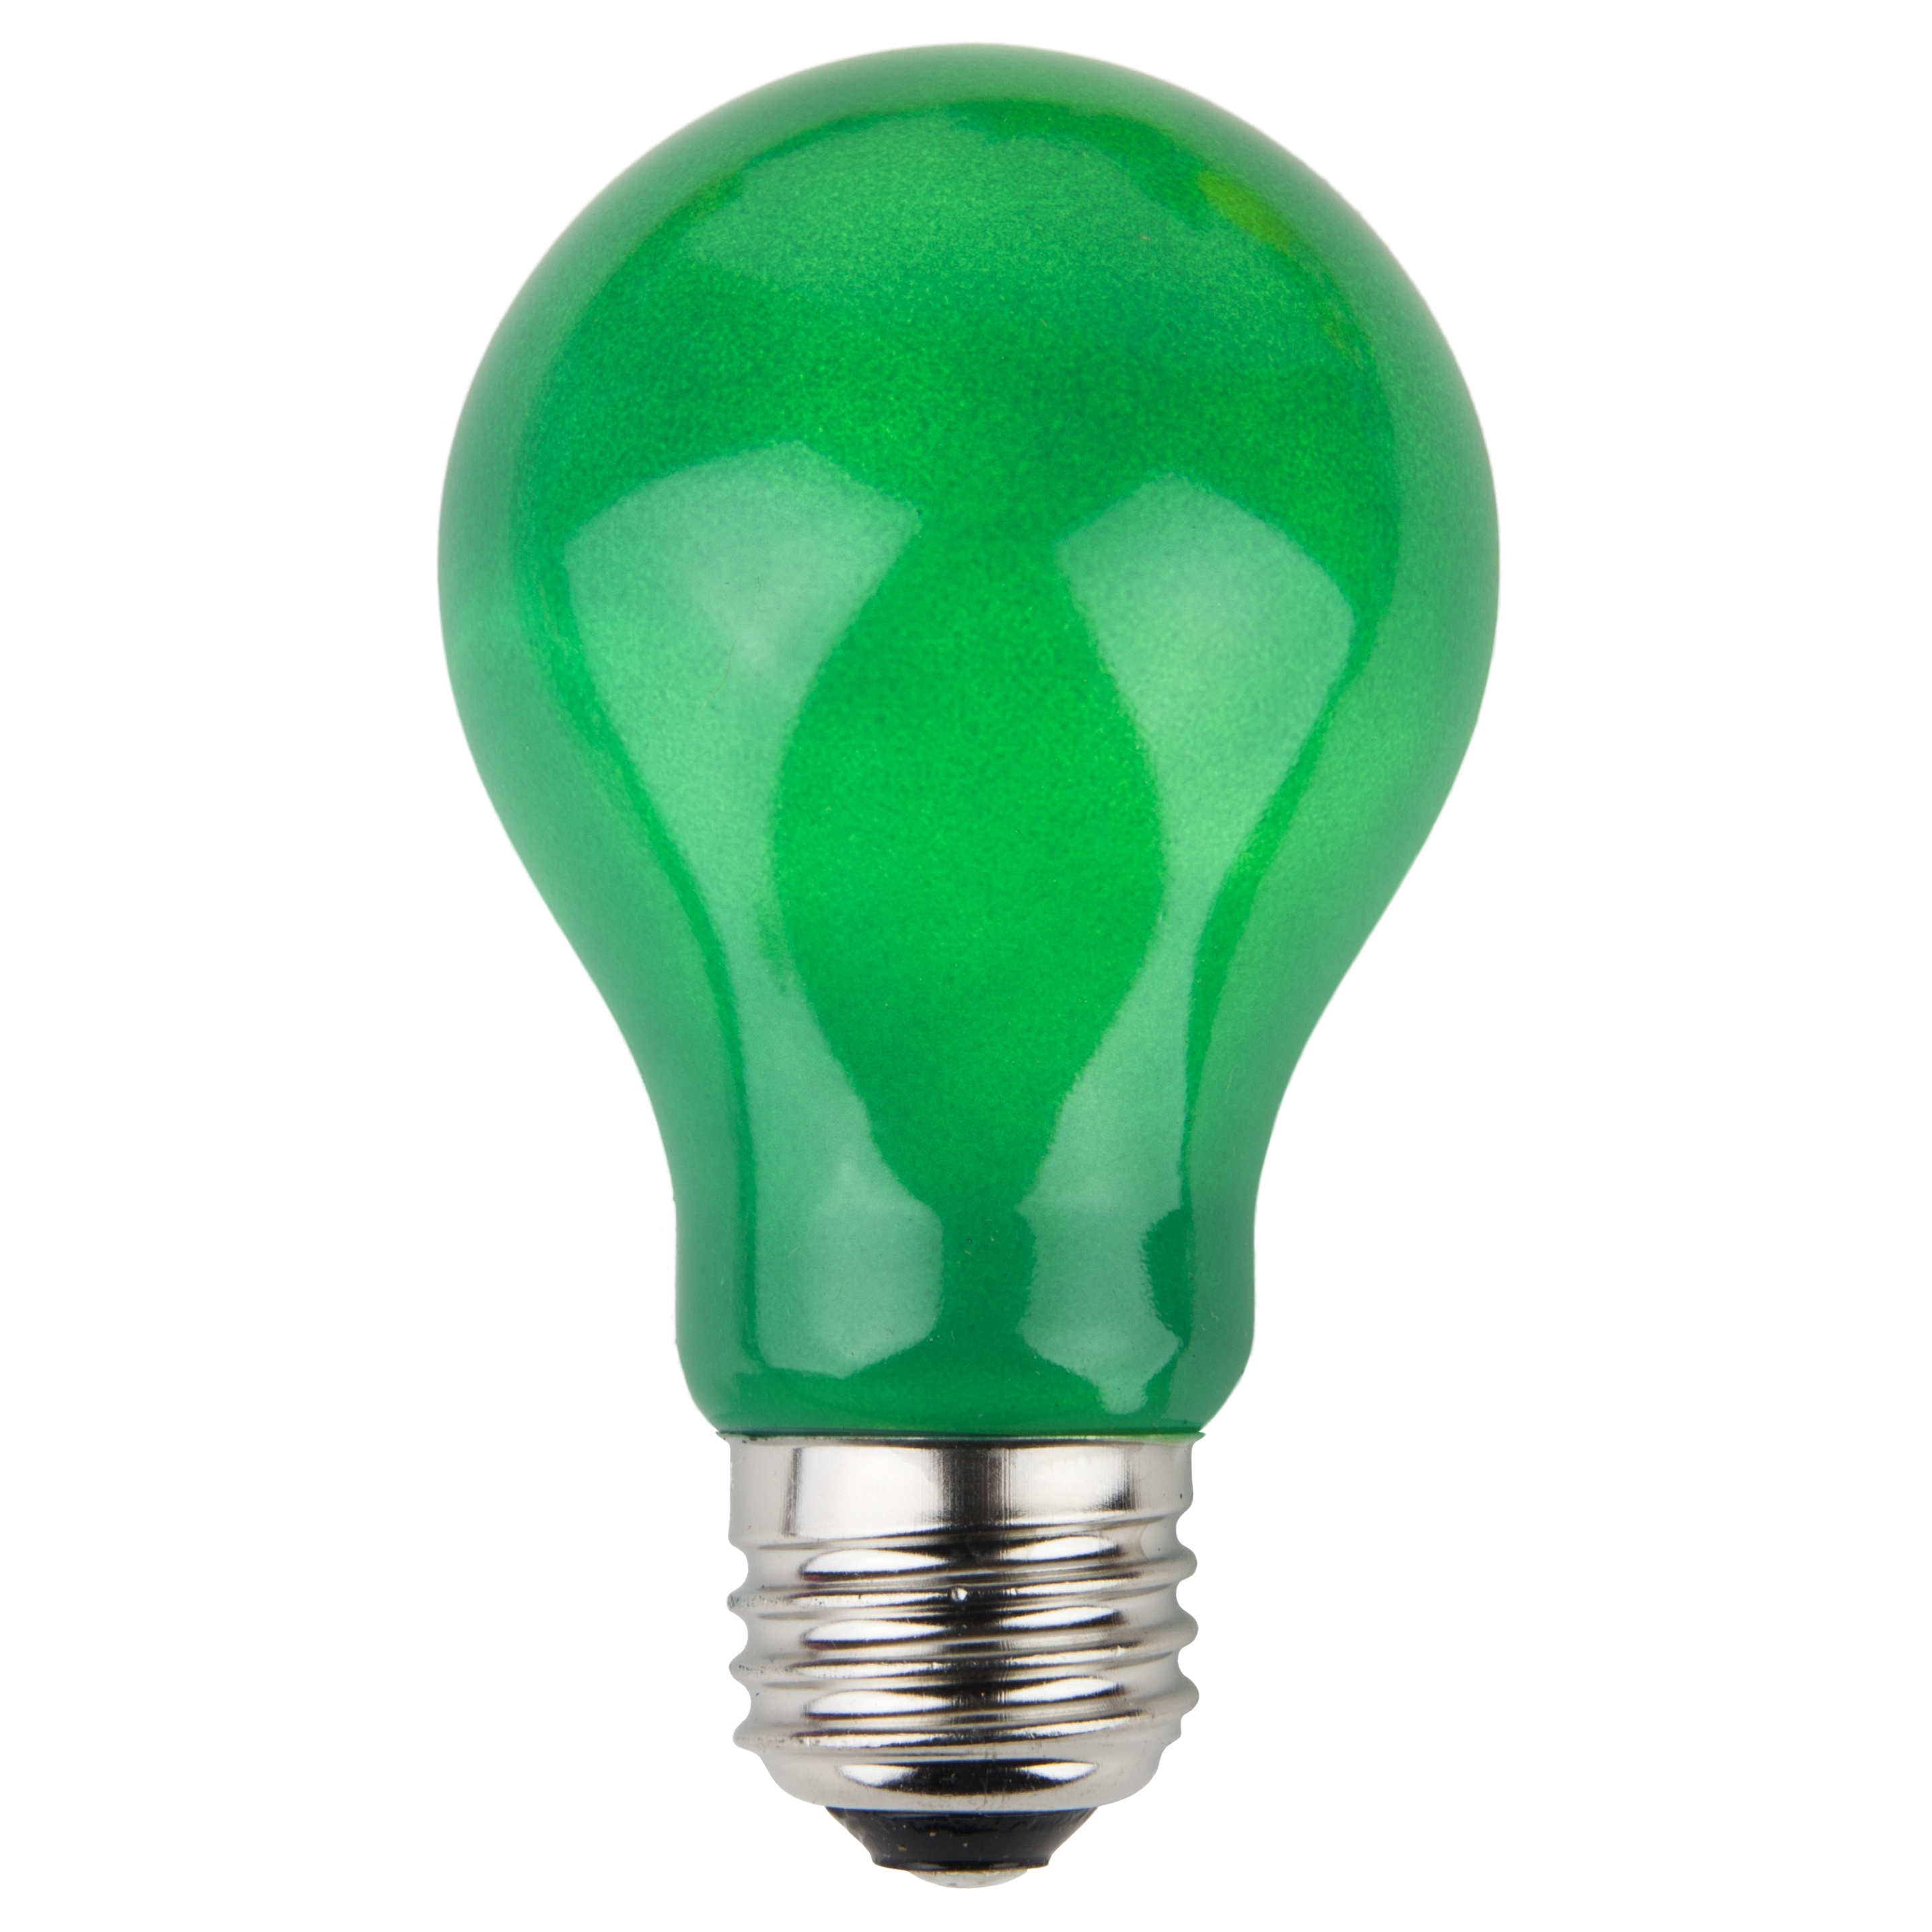 Lighting Bulb: A19 Opaque Green, 25 Watt